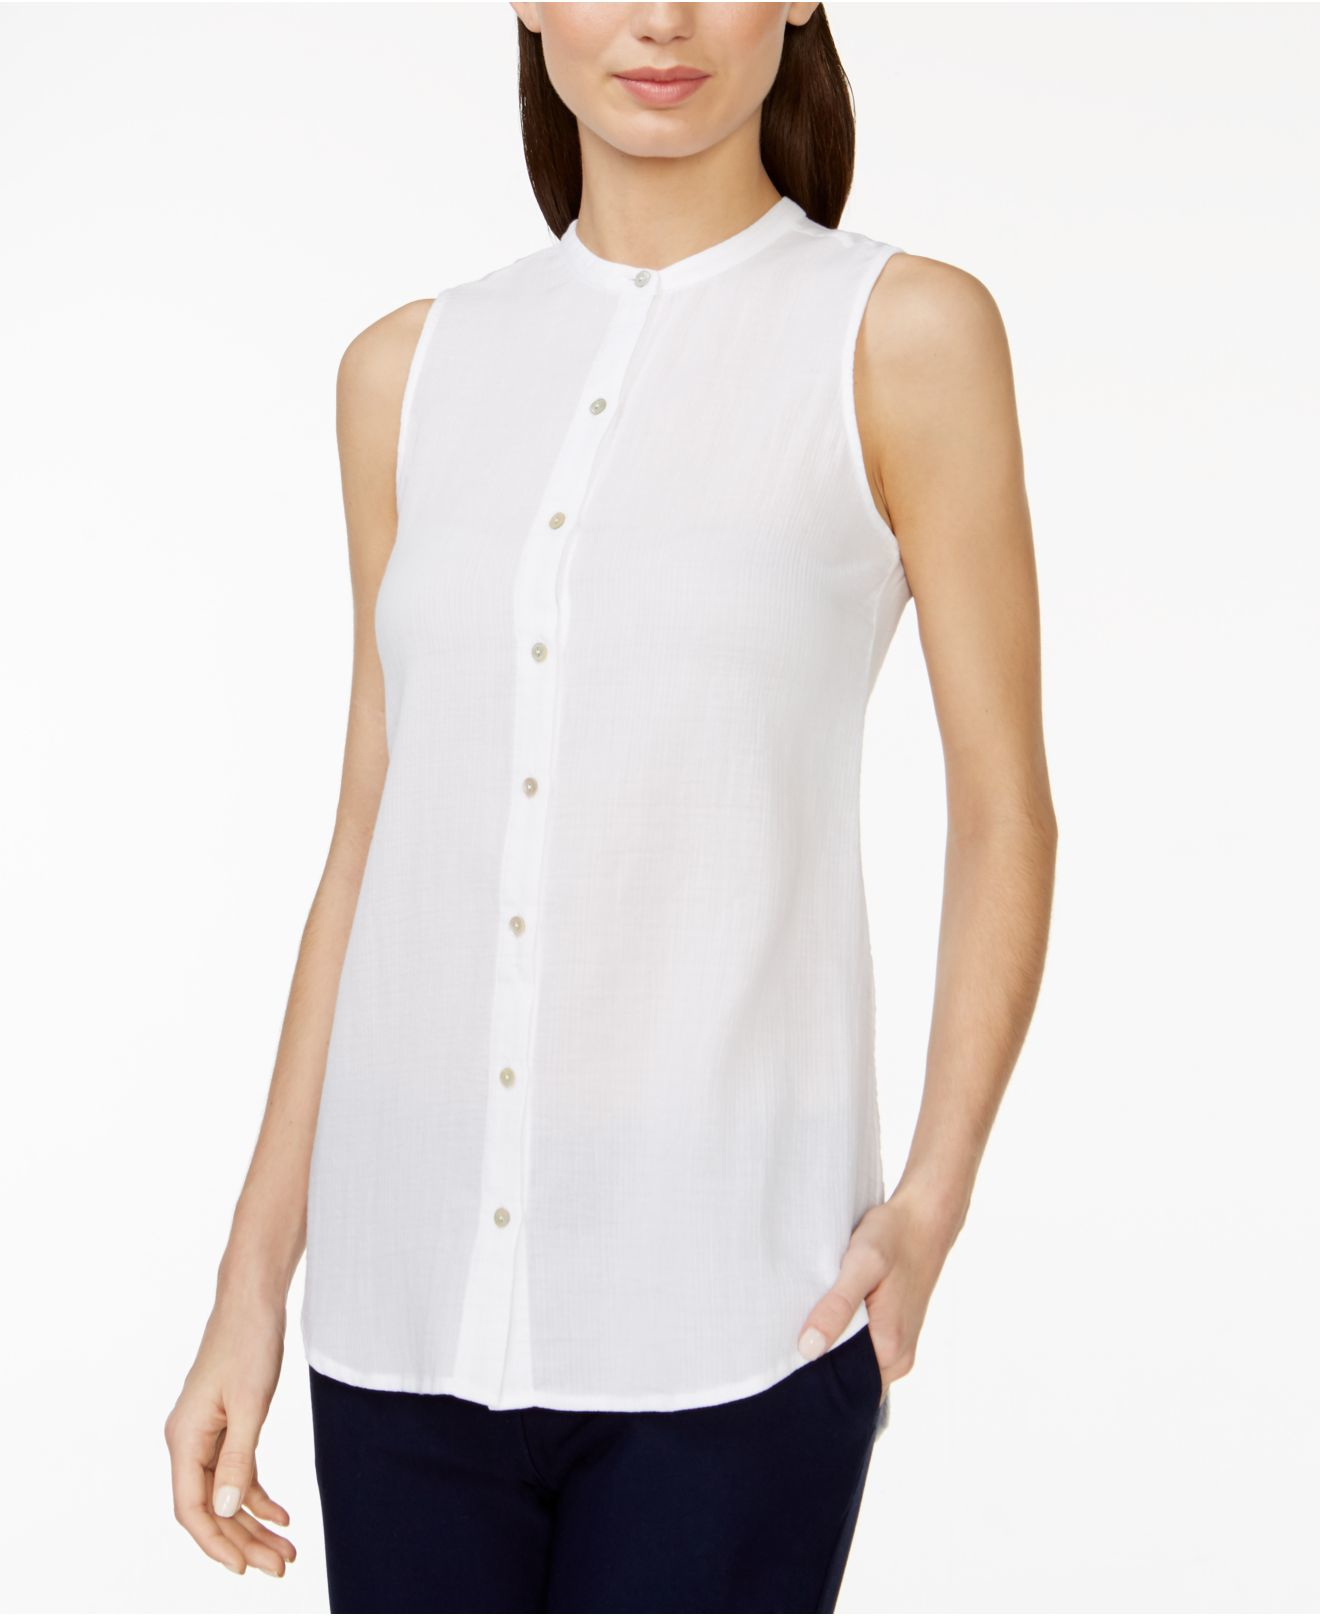 617018b1ee0736 Eileen Fisher Band-collar Sleeveless Shirt in White - Lyst